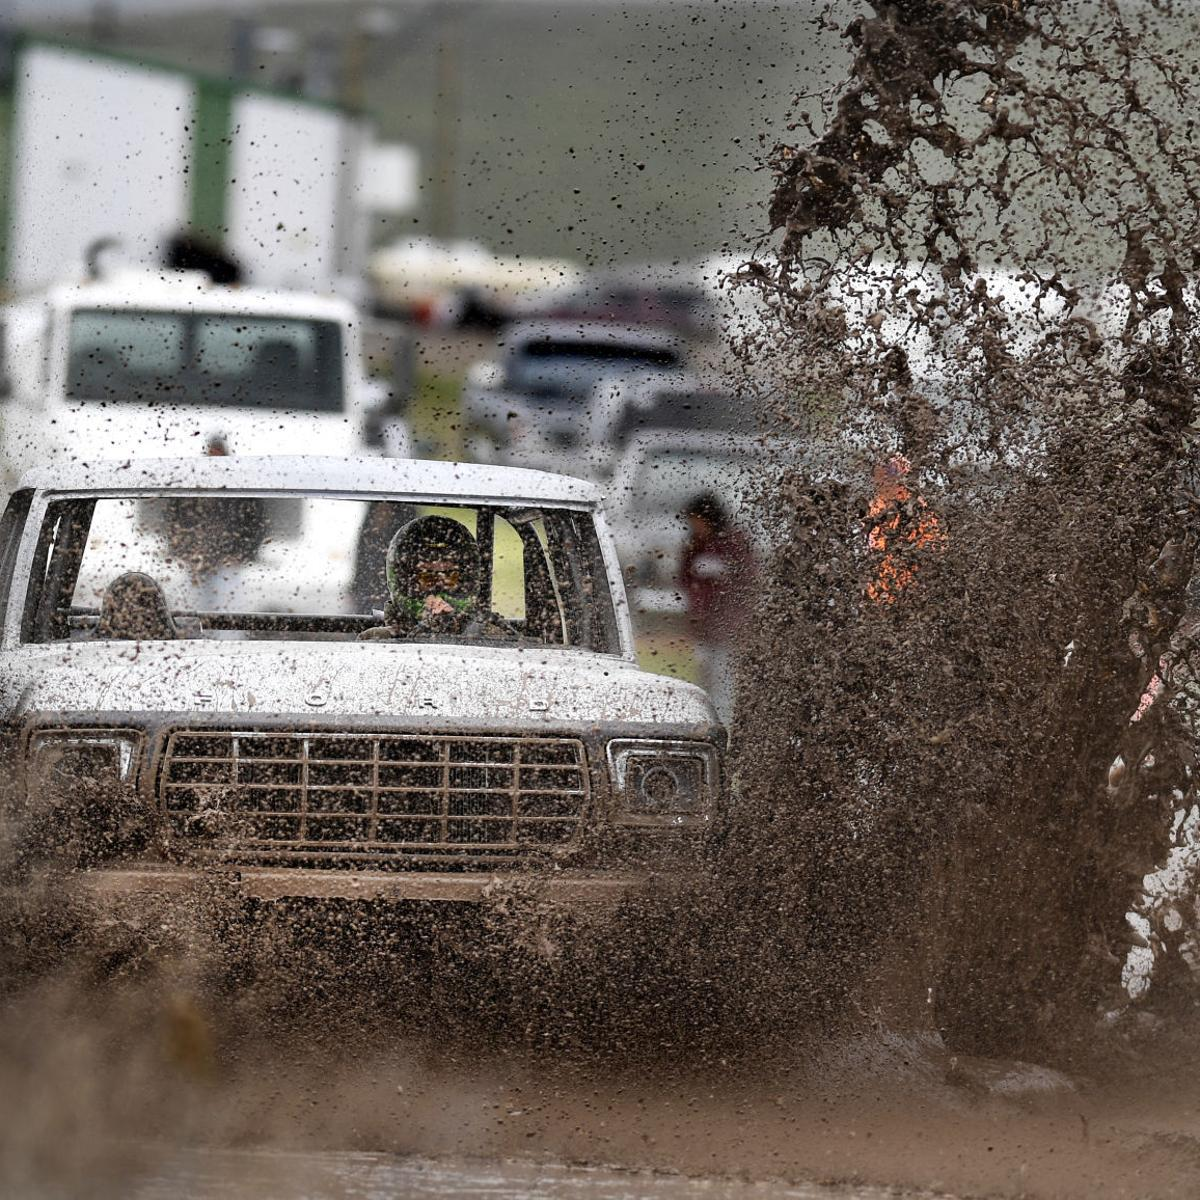 Montana's beefiest trucks get a last chance at mudding, for